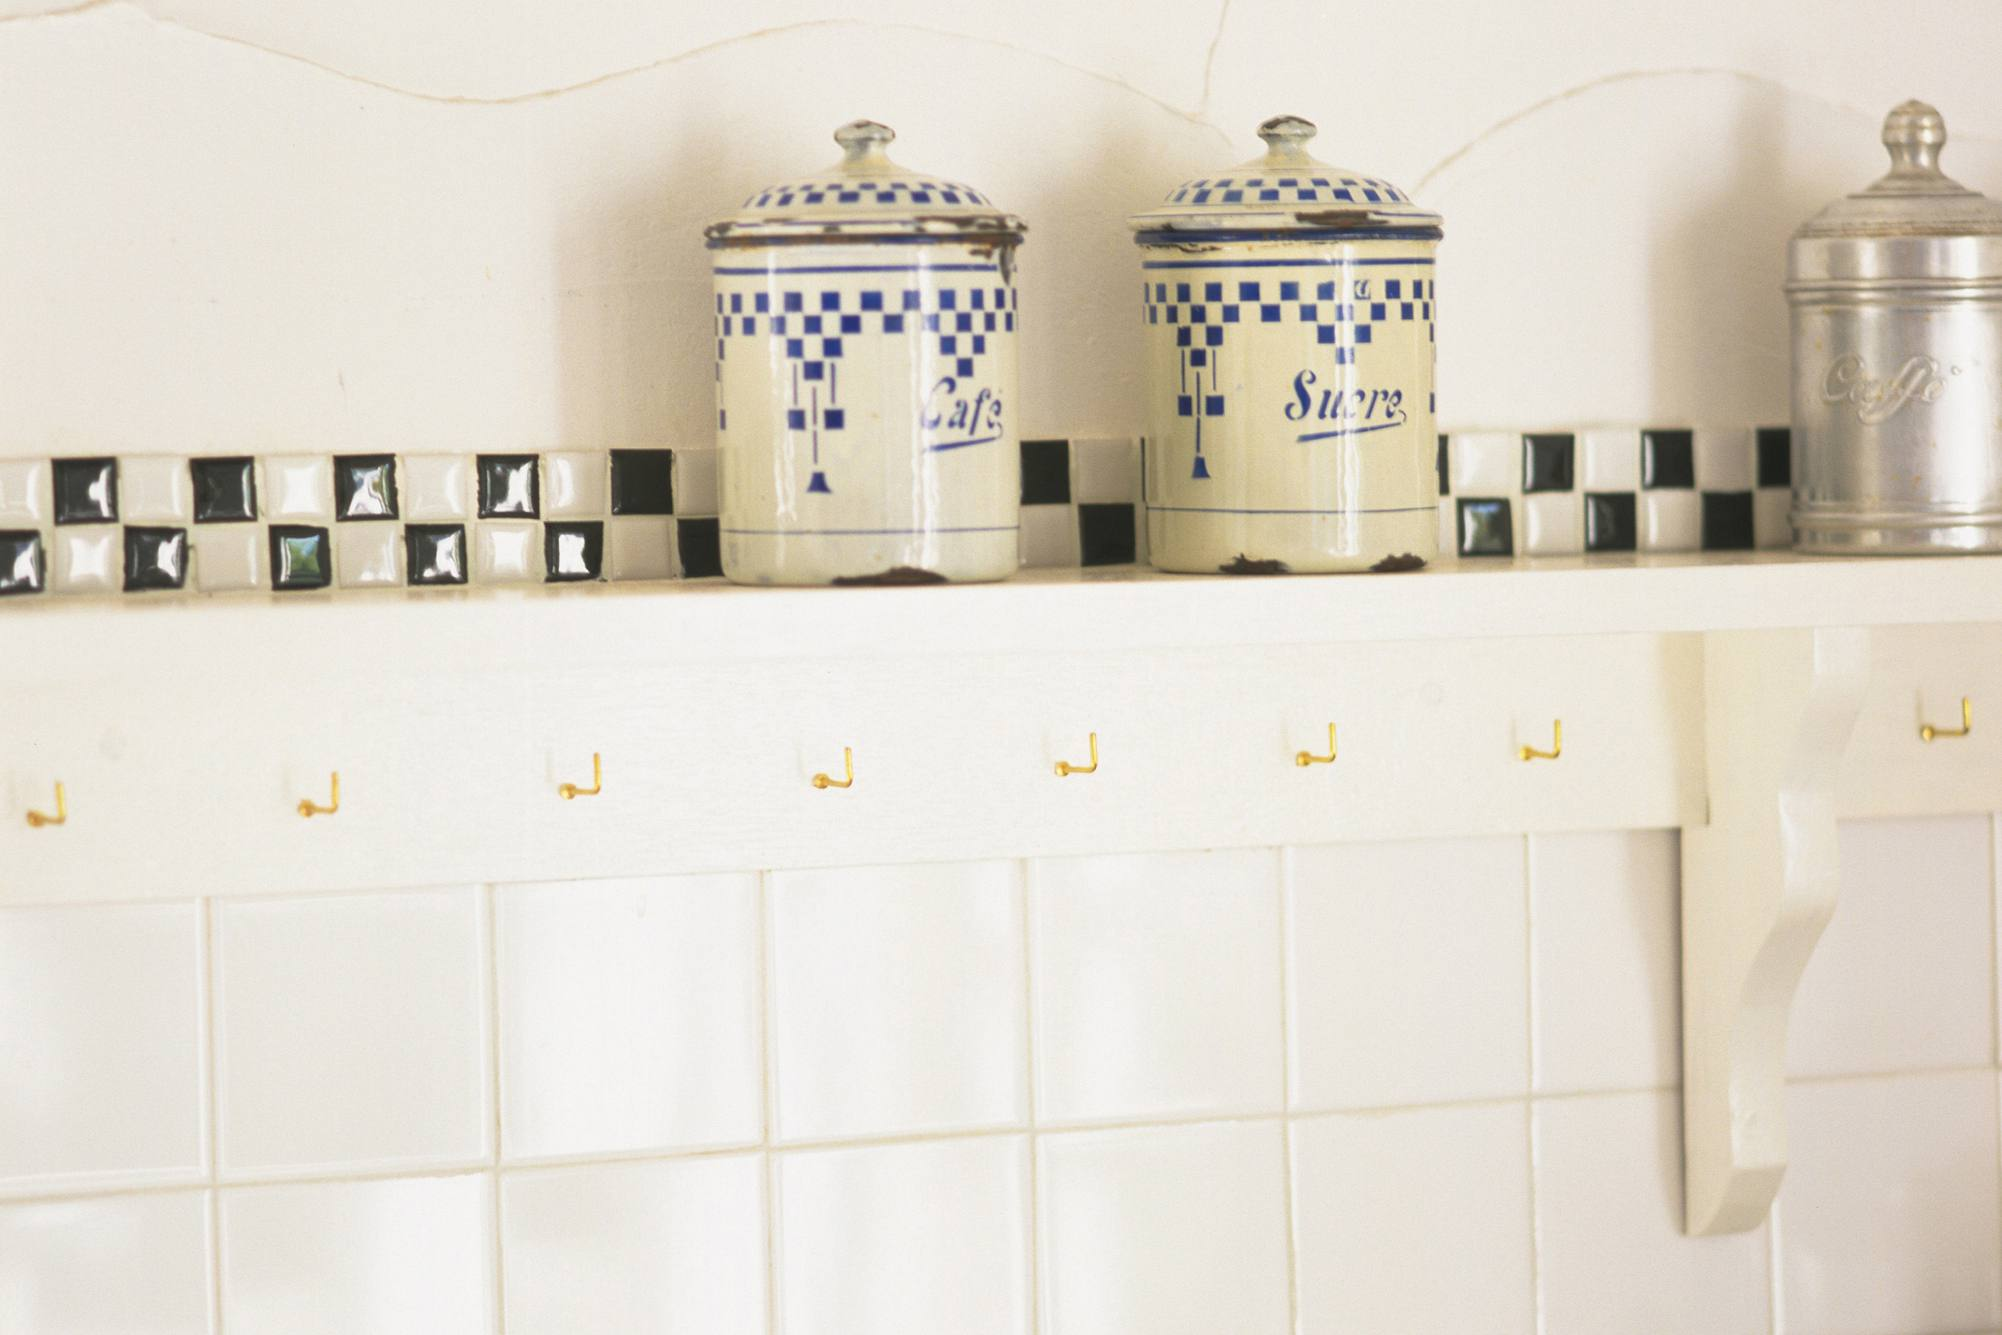 Vintage tiled kitchen walls with a contrasting checkerboard border.